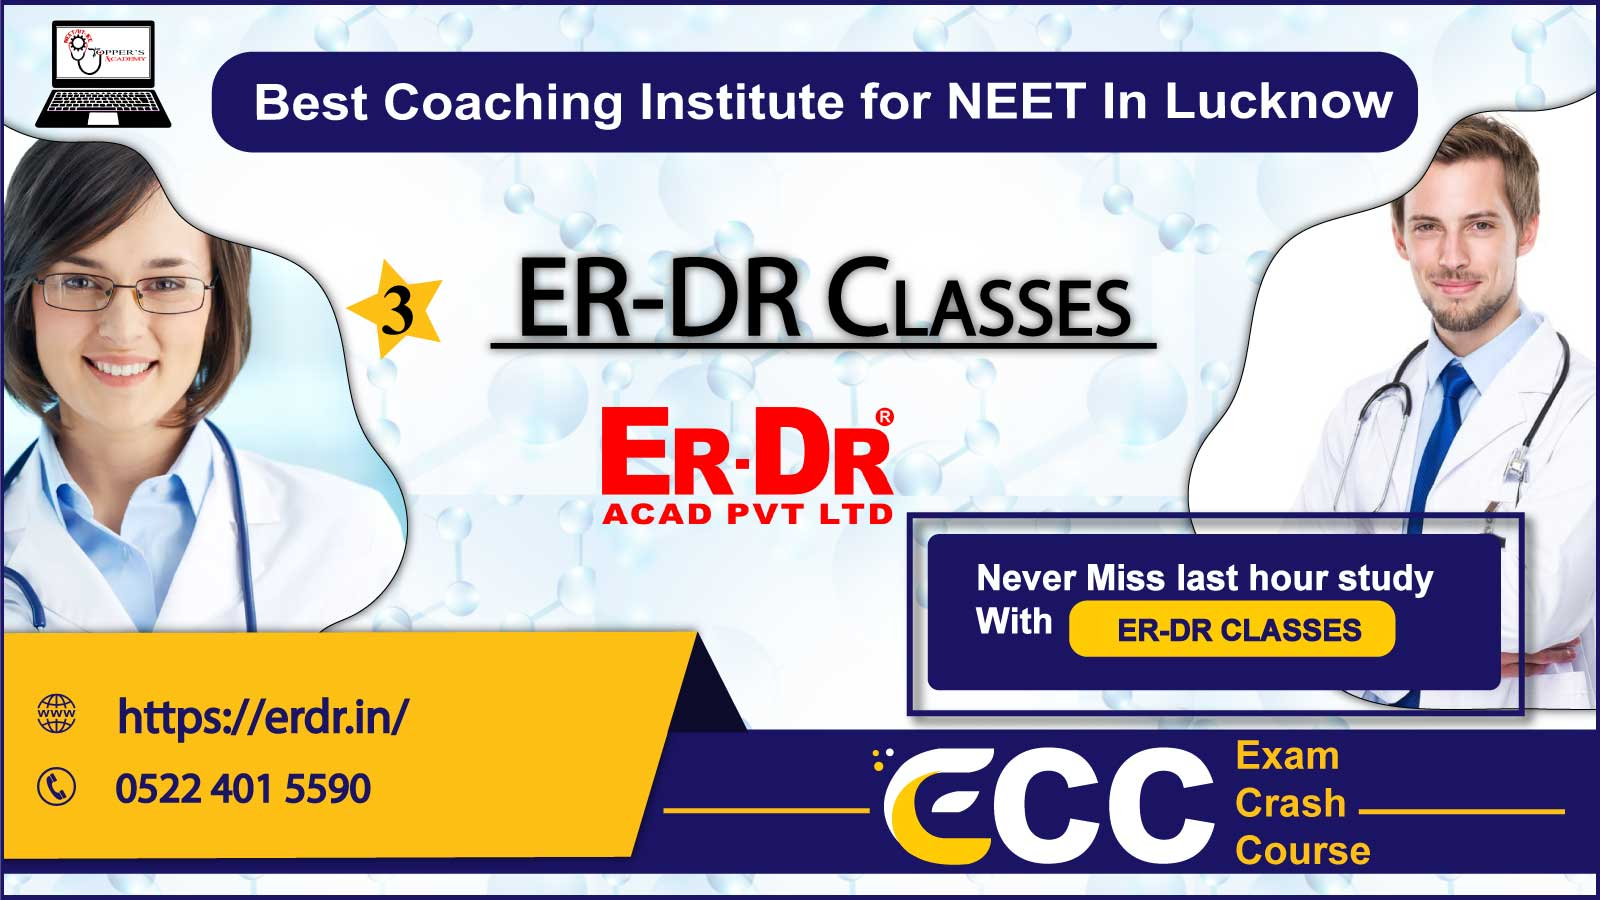 ER-DR NEET Classes in Lucknow